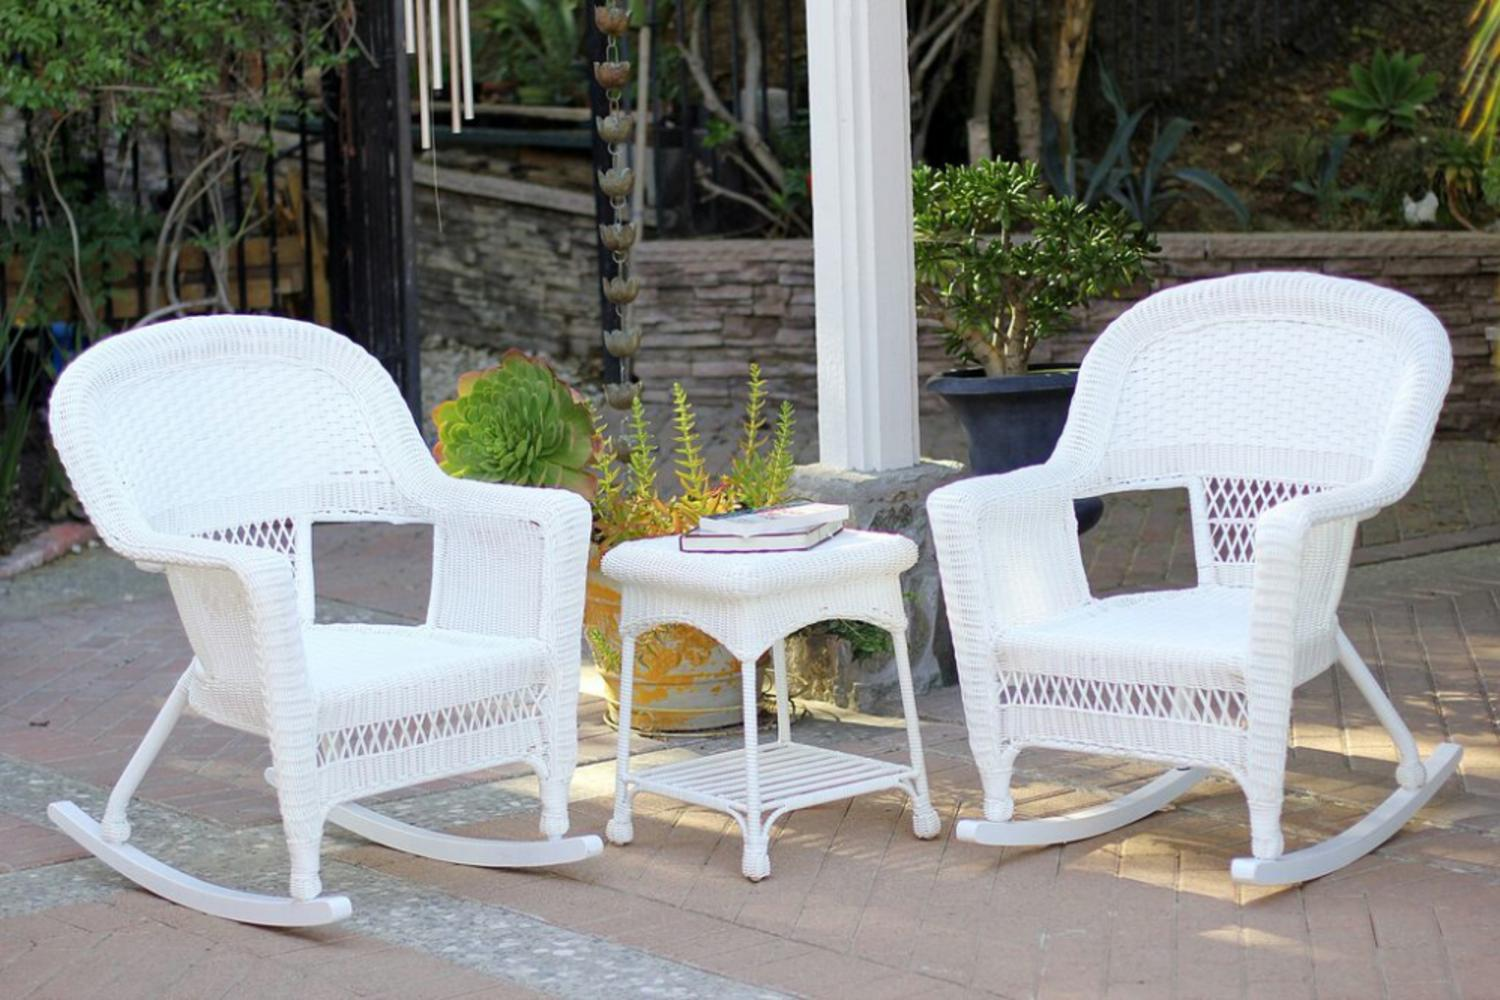 Patio Rocker Chairs 3 Piece Ariel White Resin Wicker Patio Rocker Chairs And Table Furniture Set